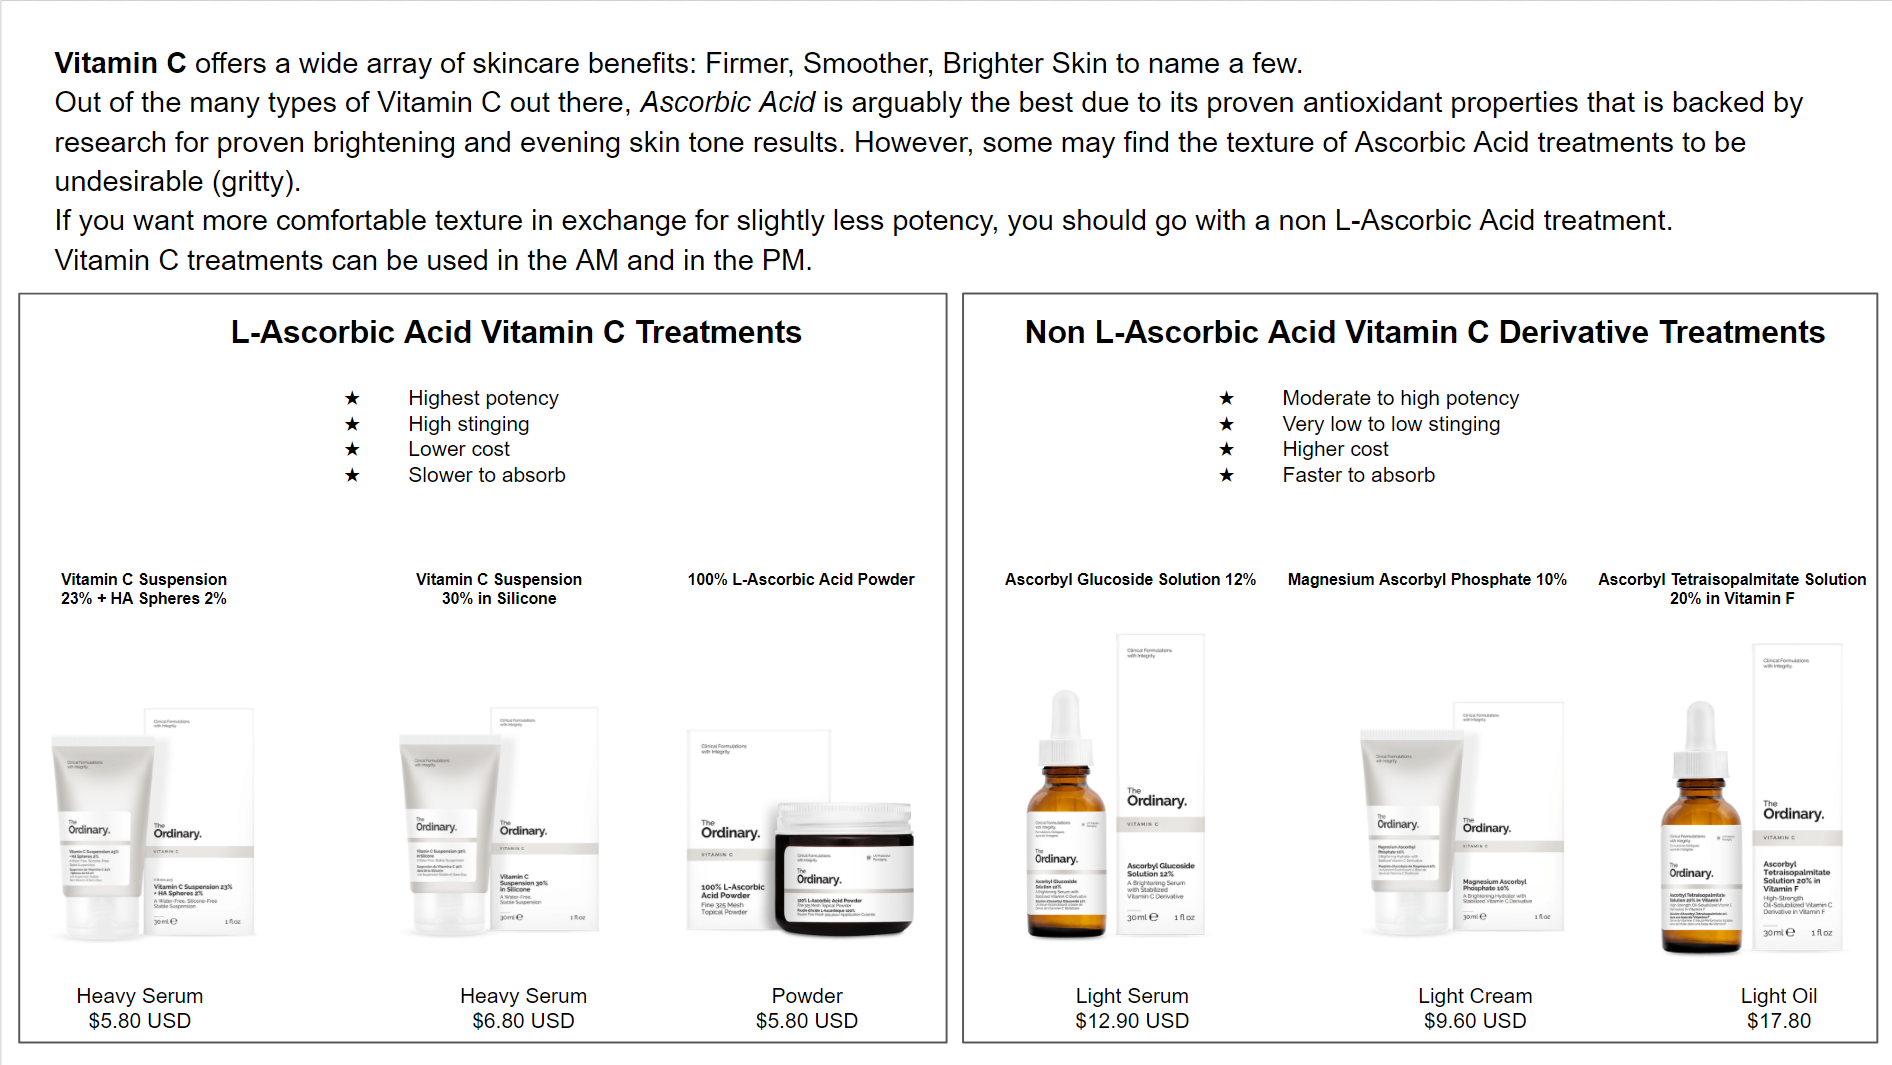 The Ordinary Vitamin C Treatment Guide